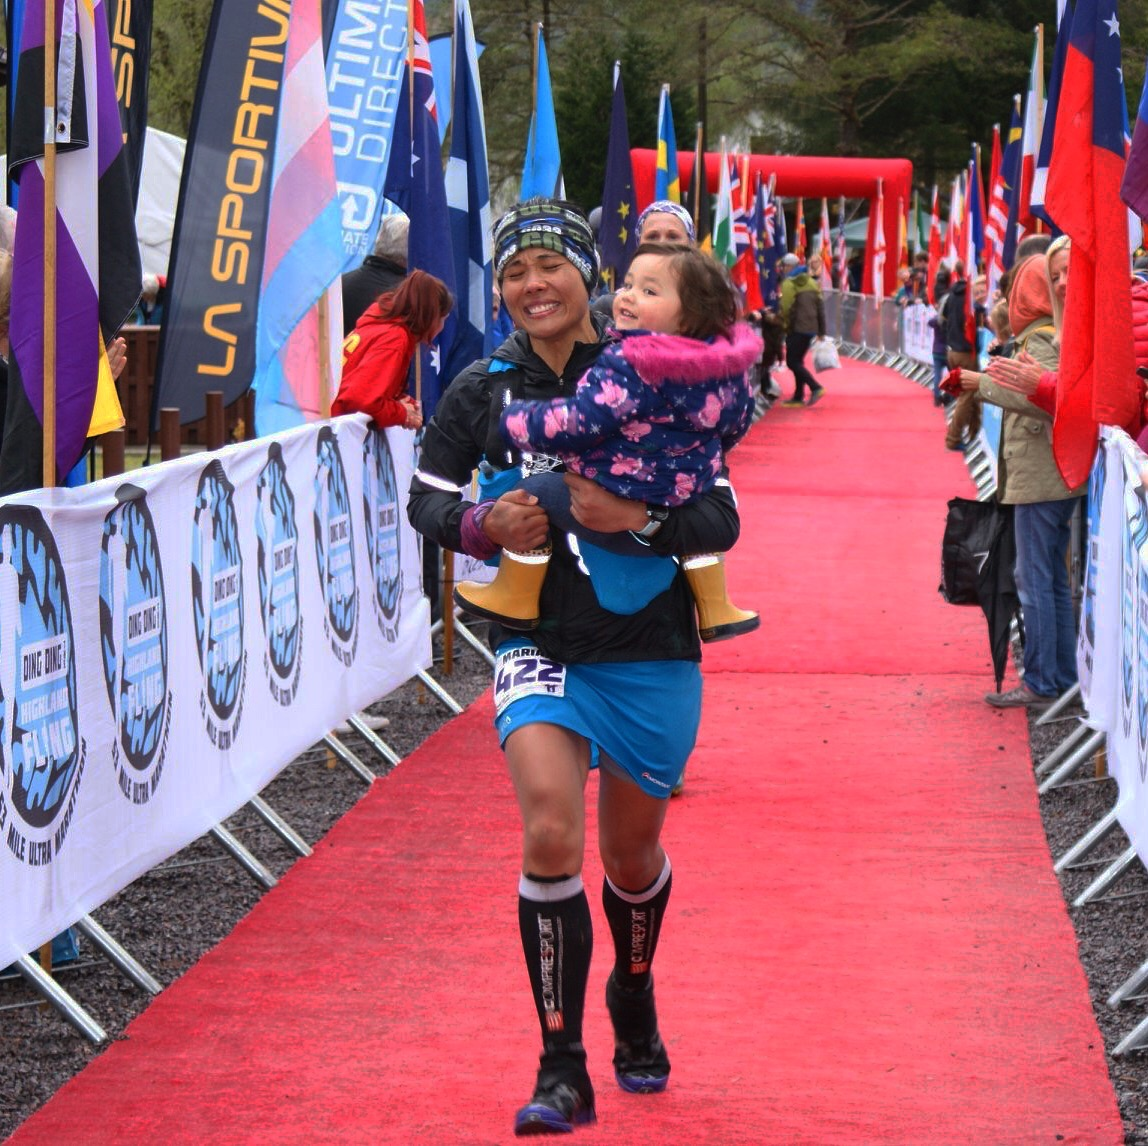 Carrying our daughter Aria along the red carpet to the Finish Line.